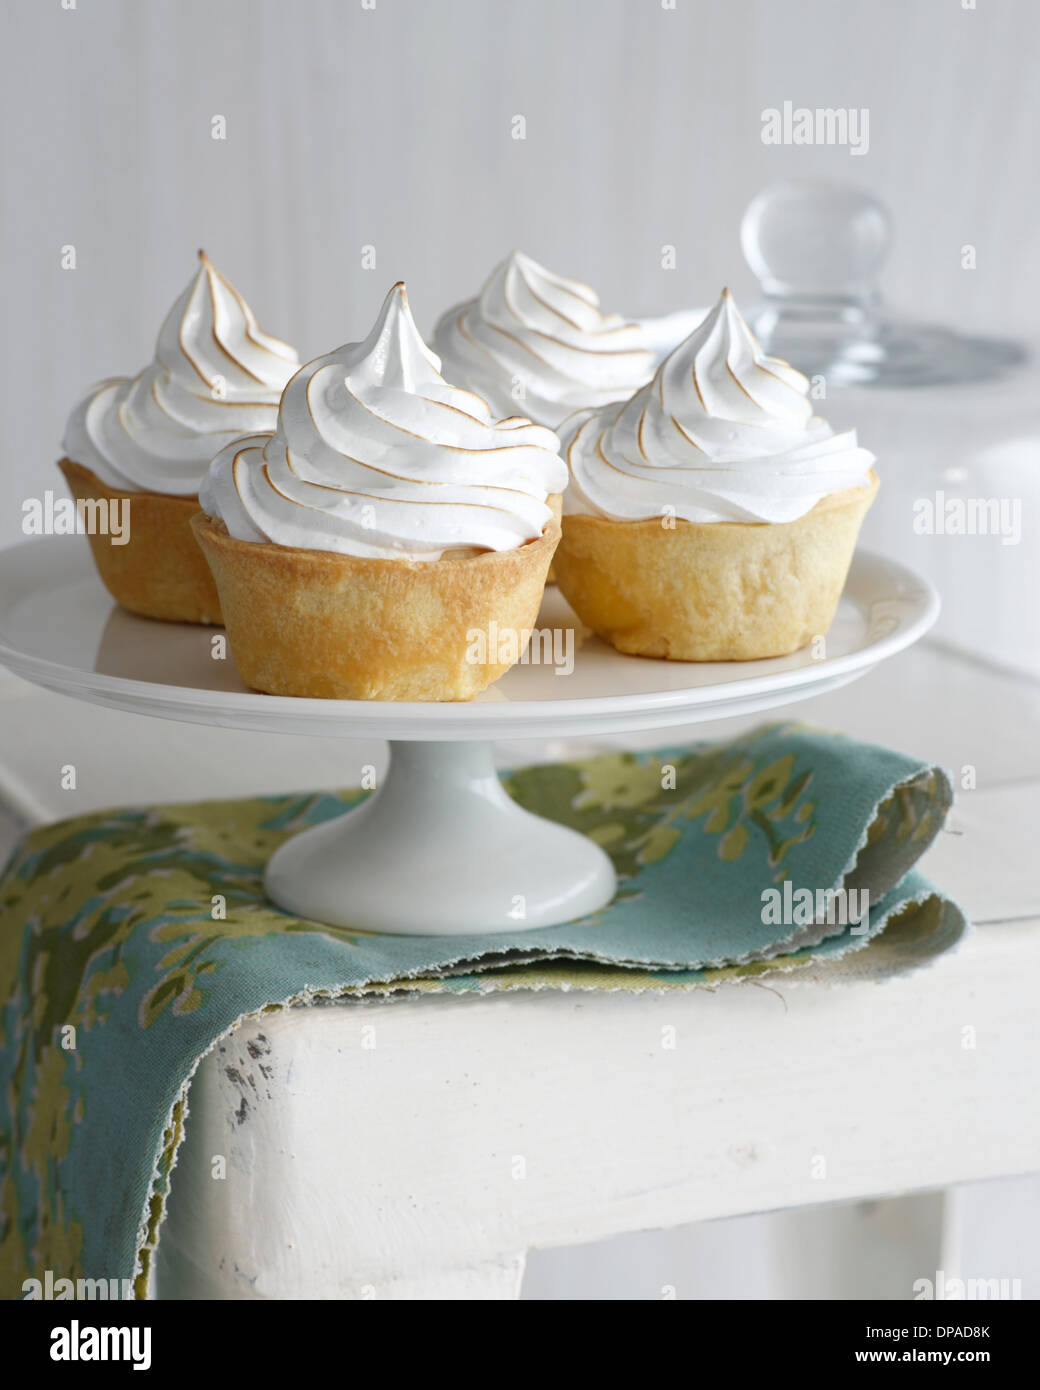 Banana meringue tarts on cake stand - Stock Image